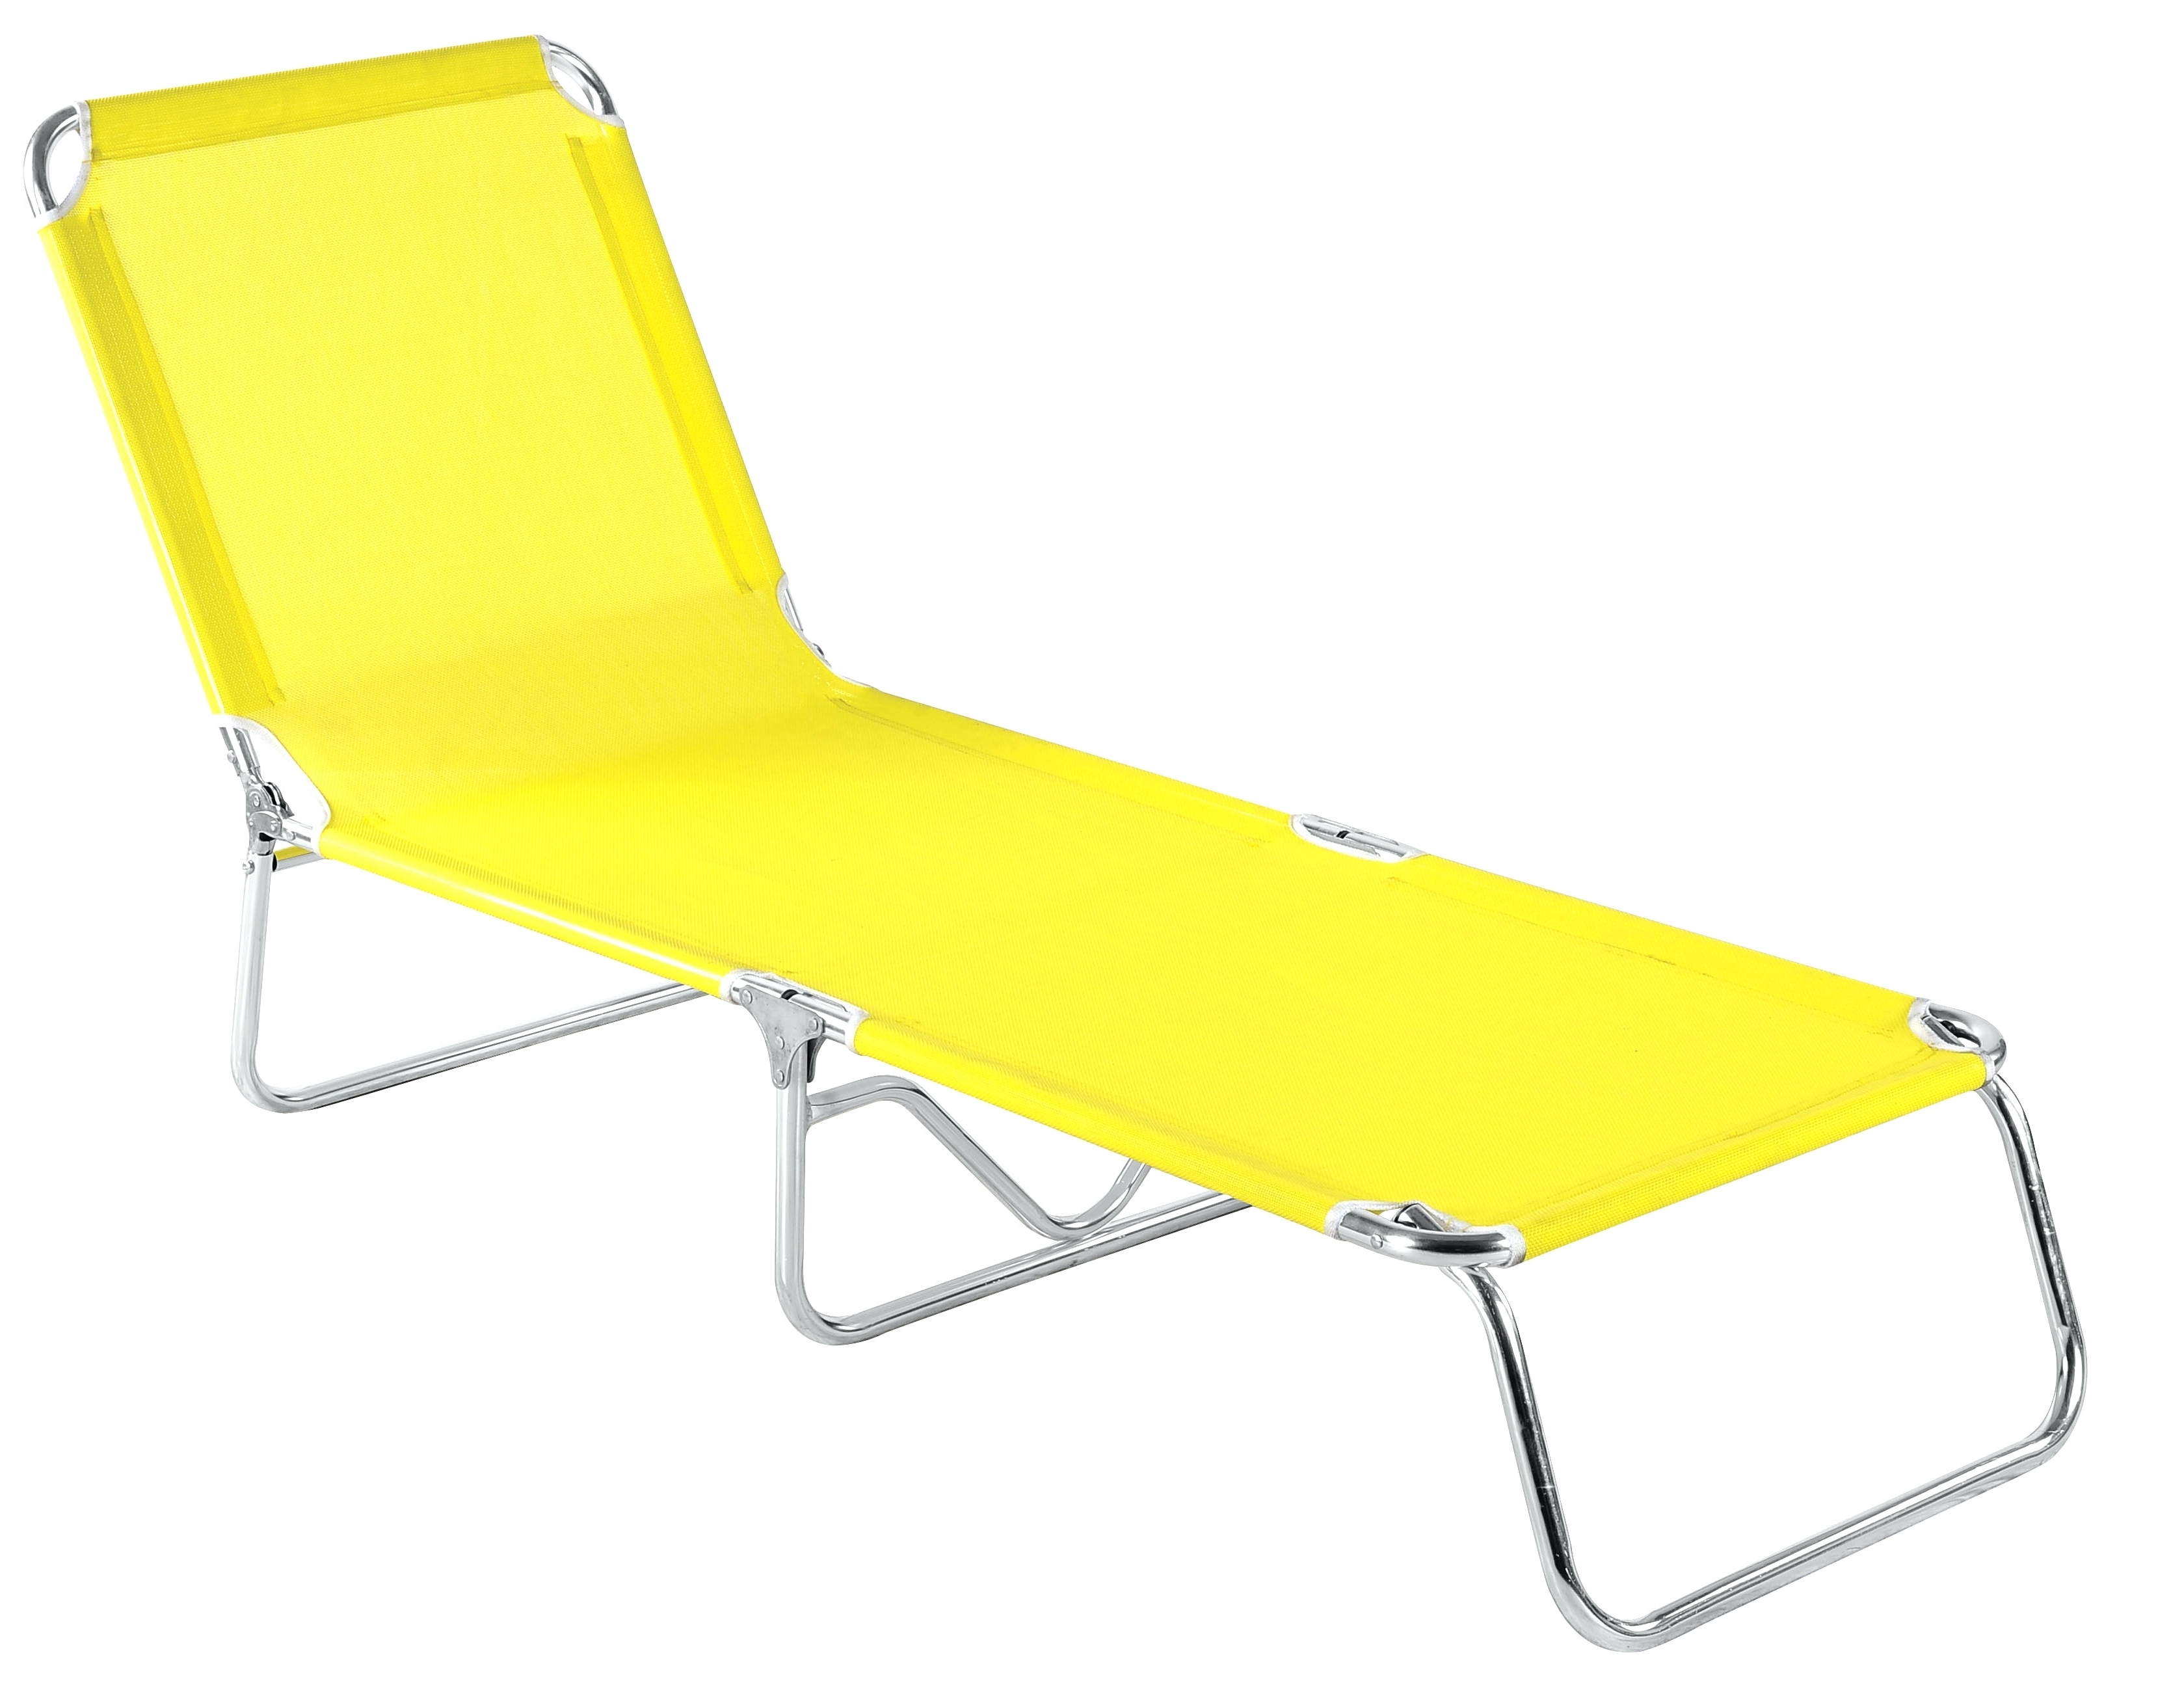 Well Known Heavy Duty Beach Lounge Chair • Lounge Chairs Ideas In Heavy Duty Chaise Lounge Chairs (View 14 of 15)